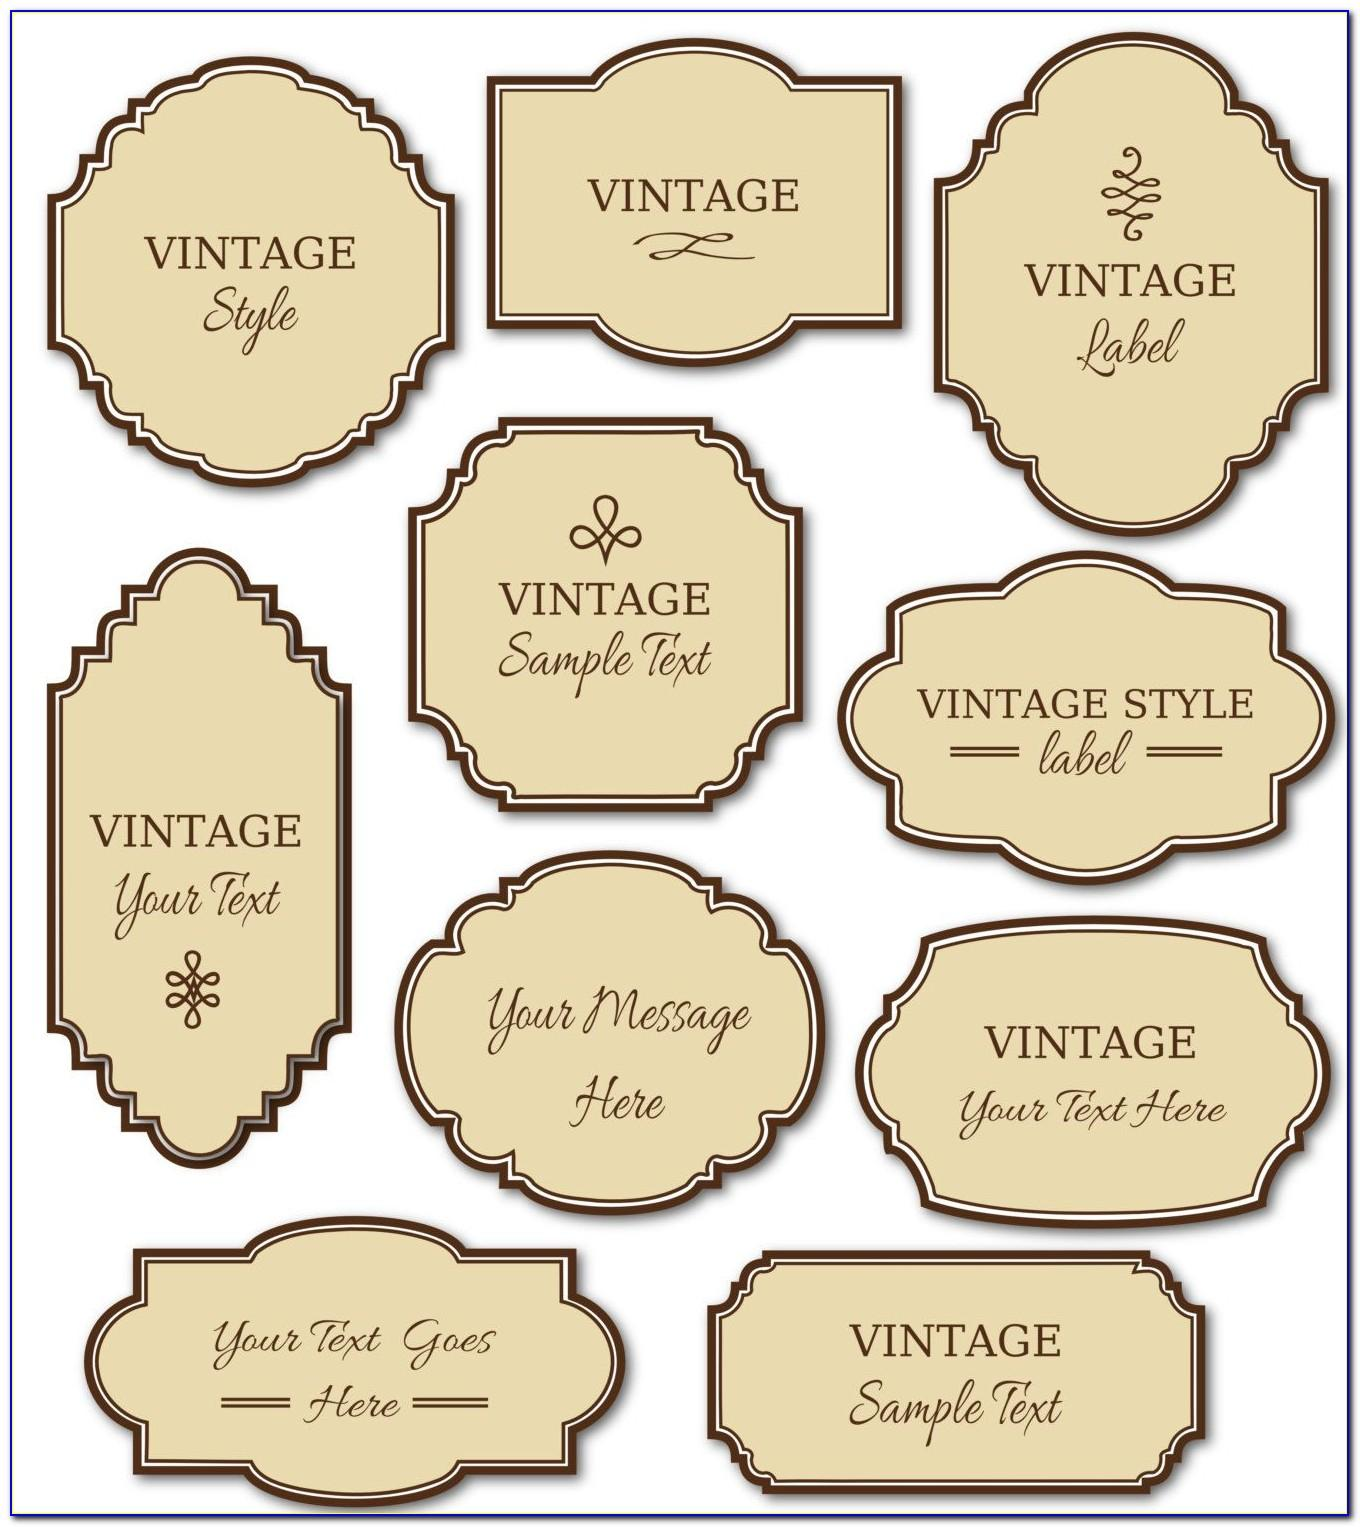 Vintage Liquor Label Template